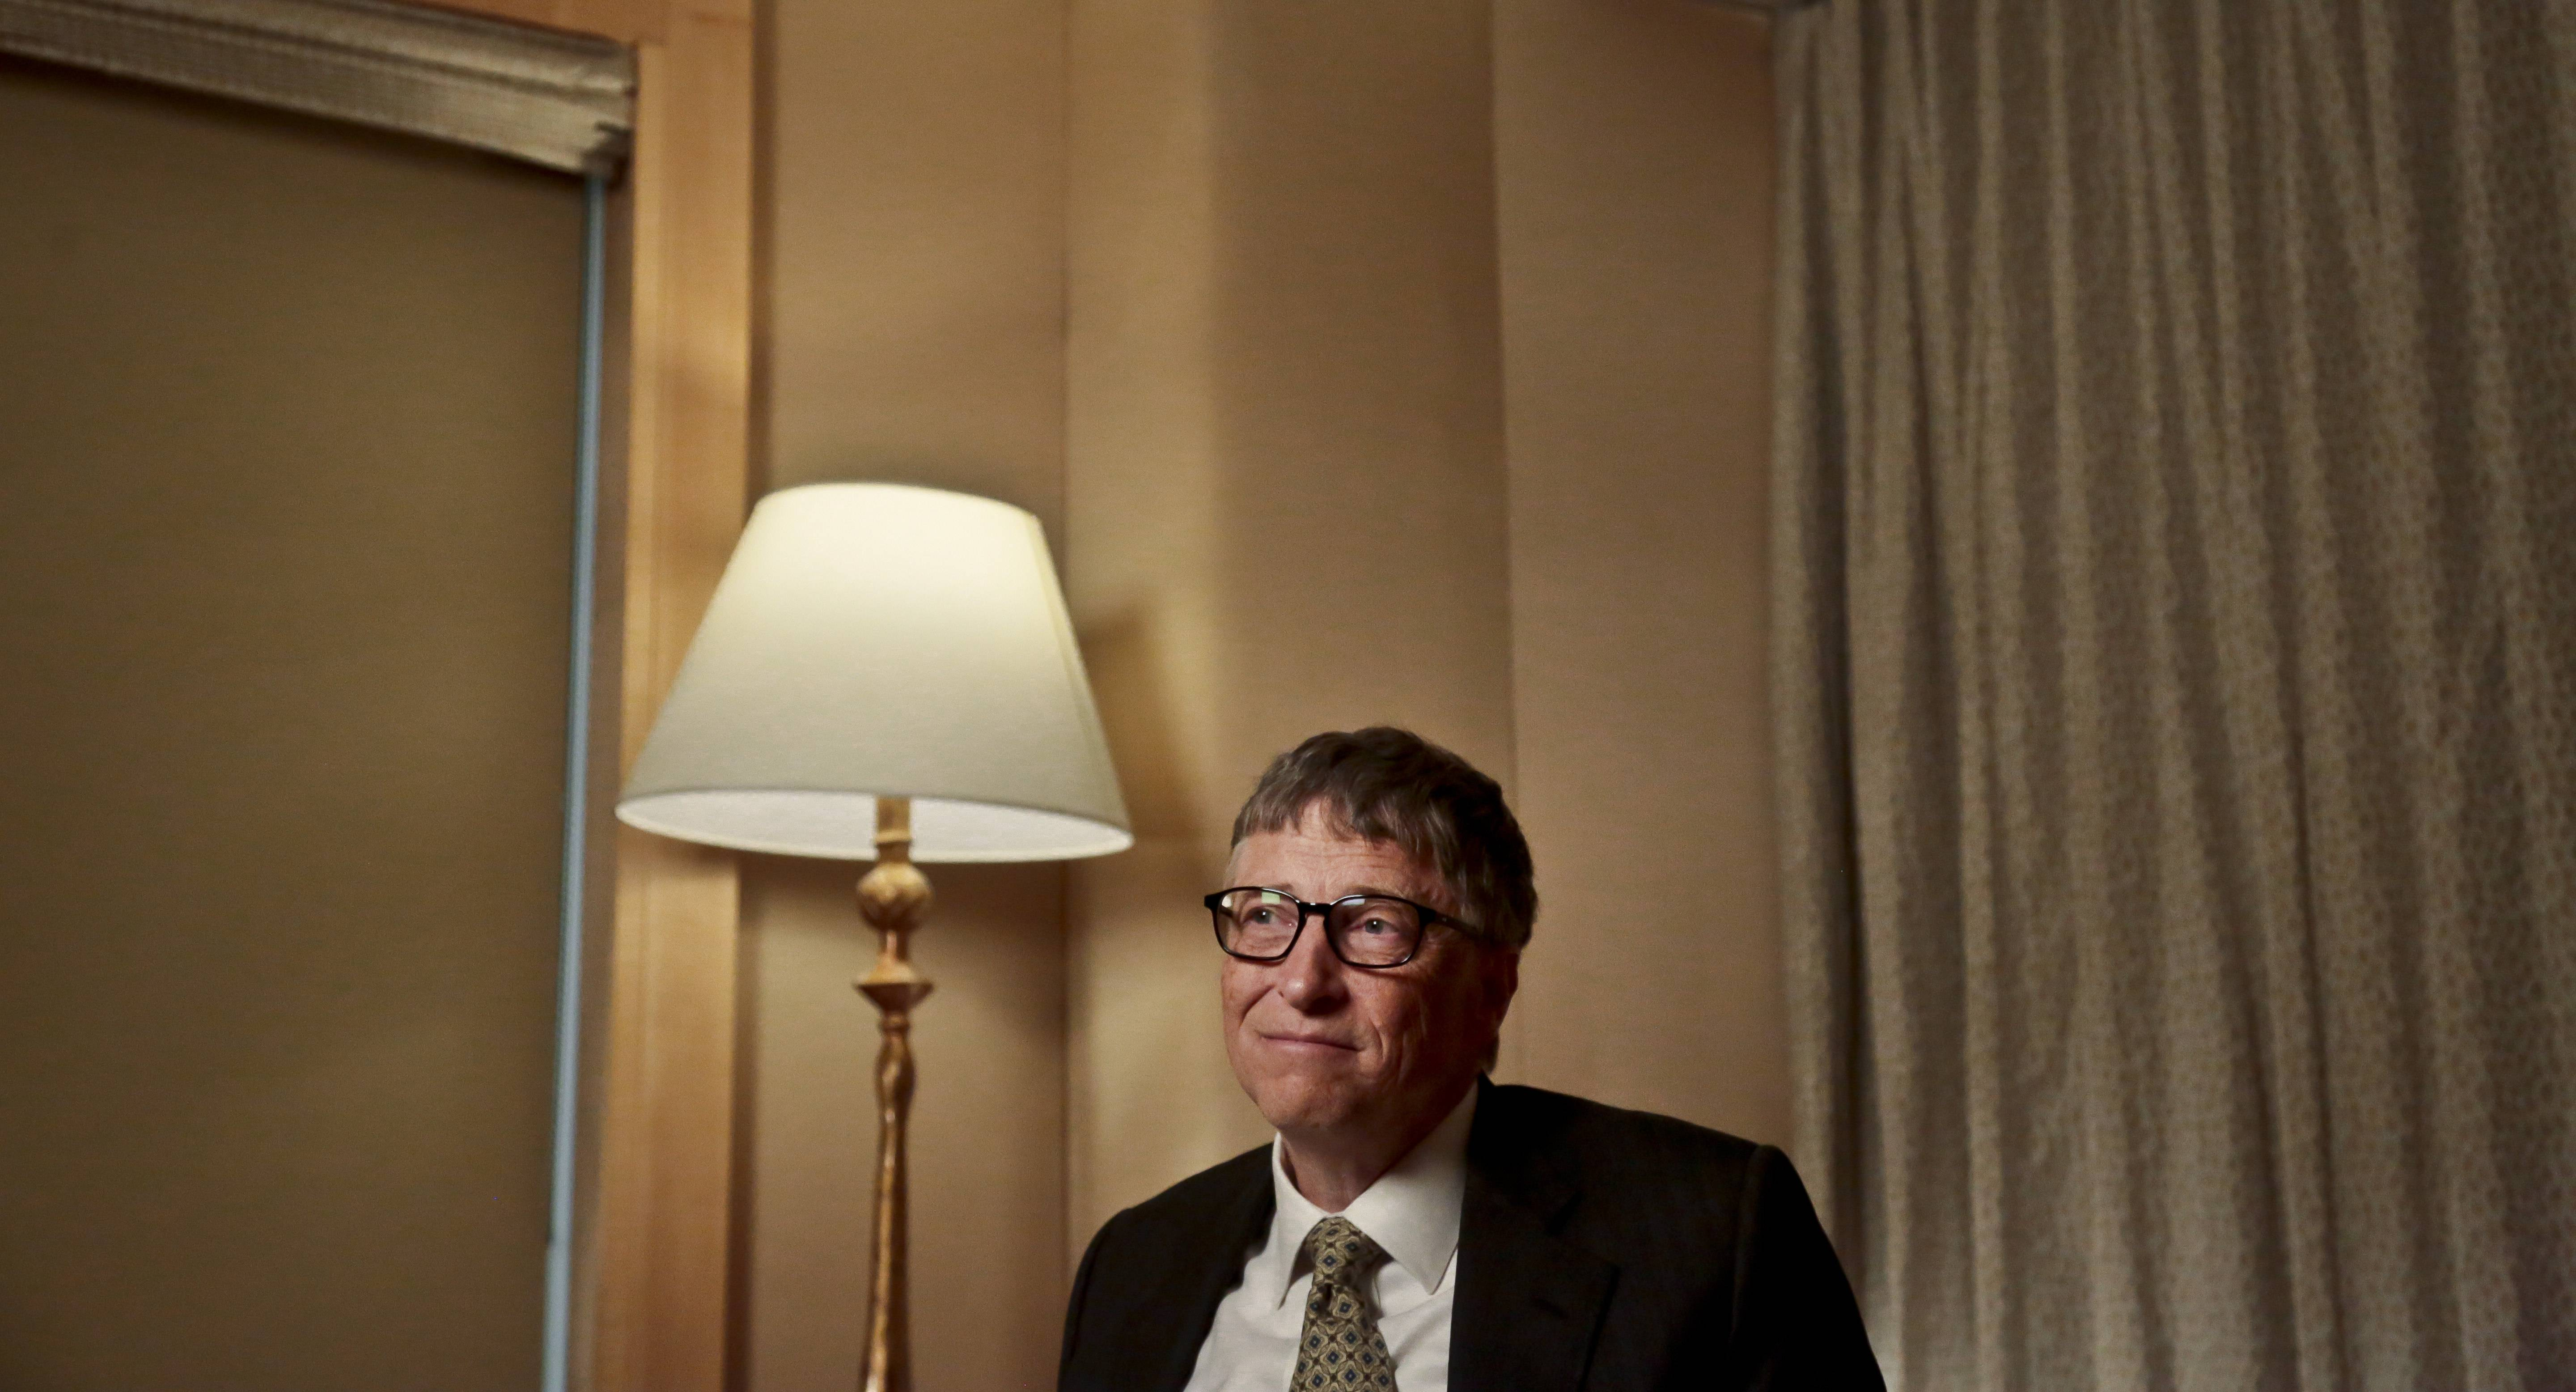 Microsoft co-founder Bill Gates is back on top of the list of the world's richest people after a four-year hiatus.